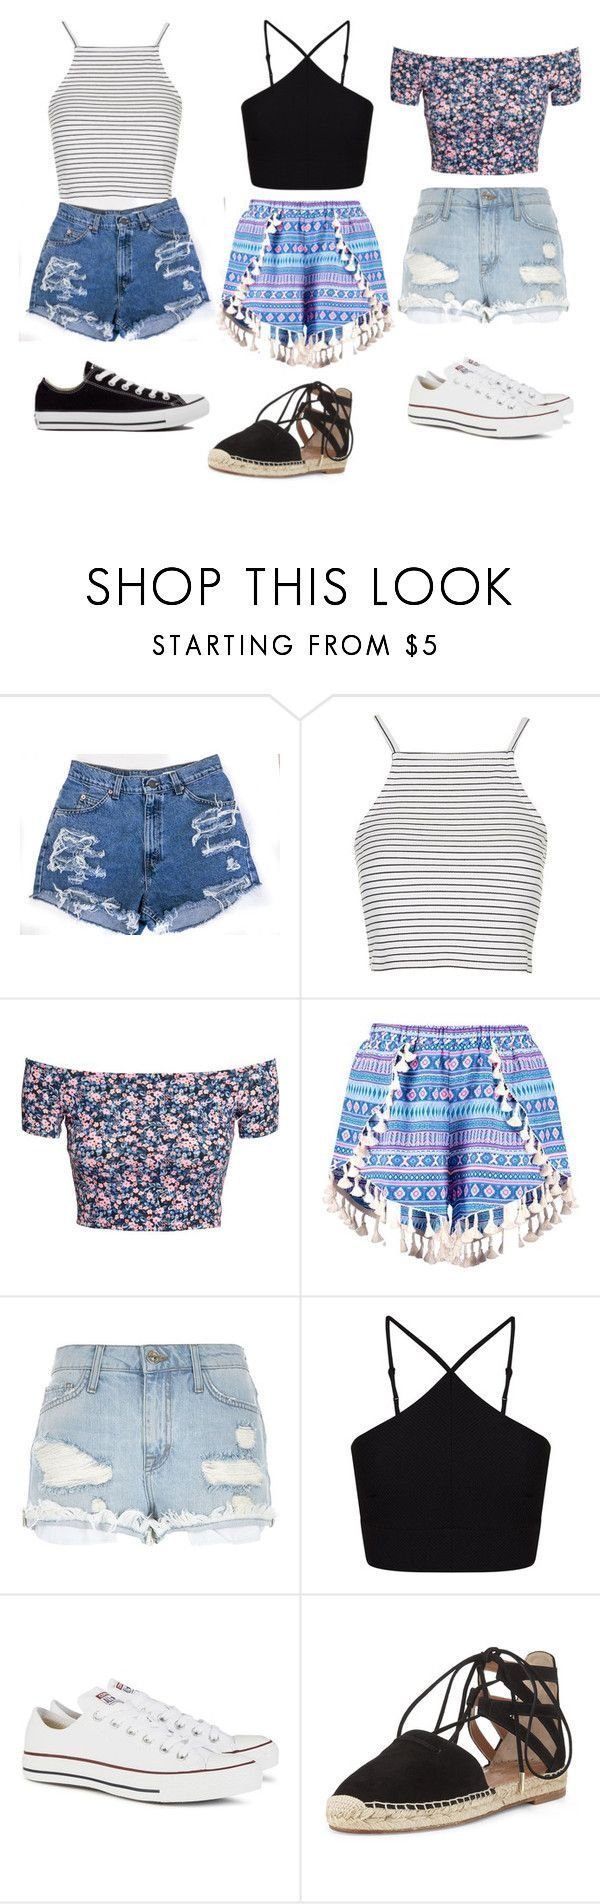 """""""Summer outfits """" by skyscraper1432 ❤ liked on Polyvore featuring Topshop, H&M…"""